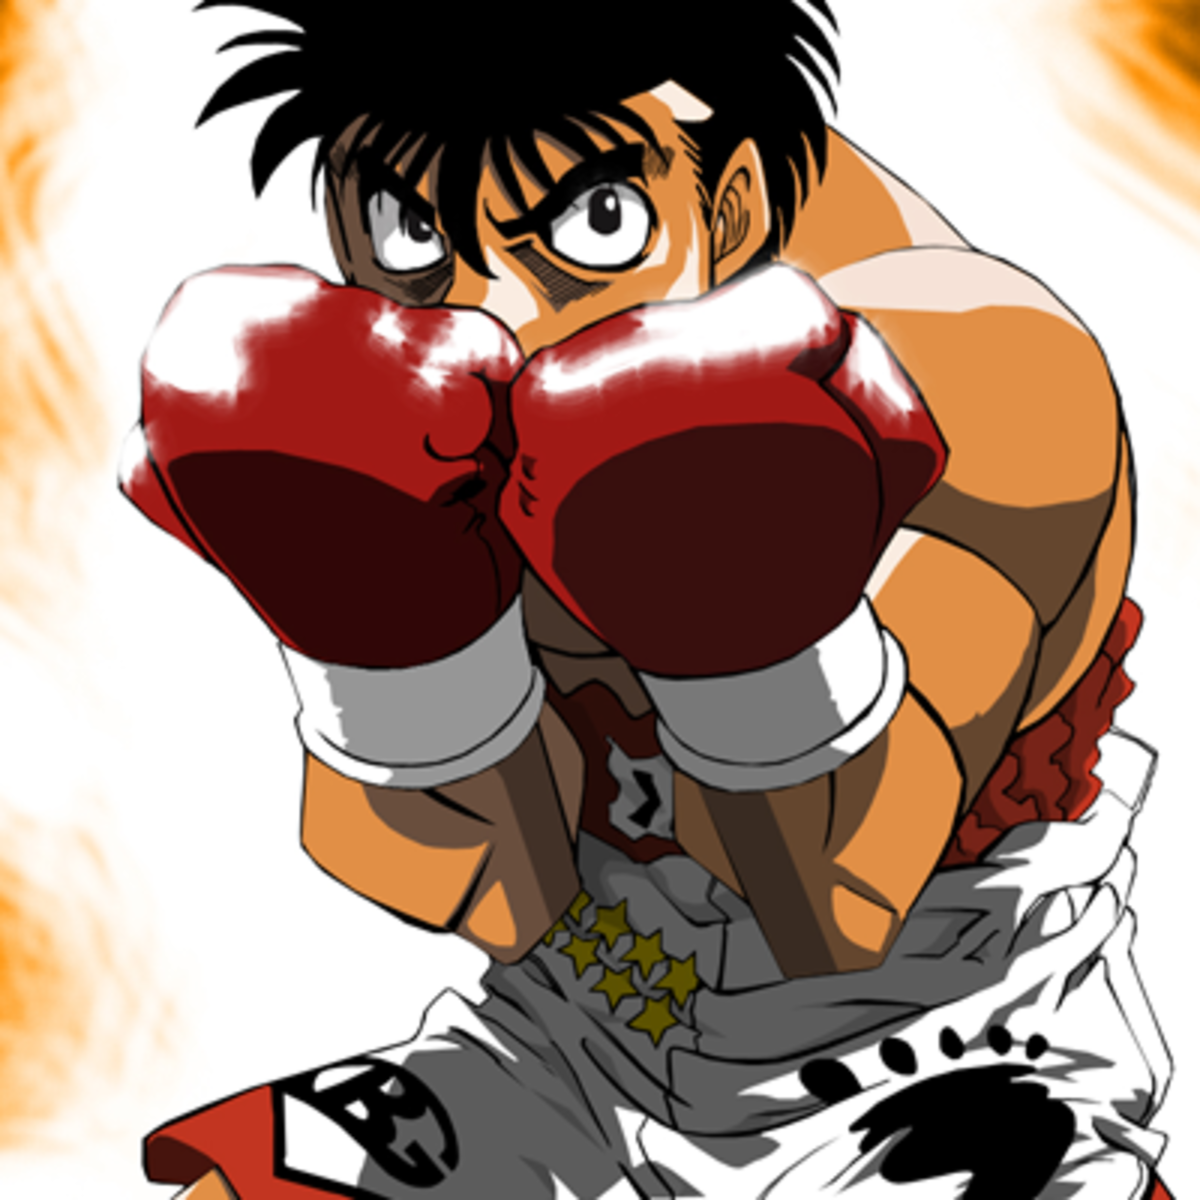 Ippo Magunochi in a defensive pose.